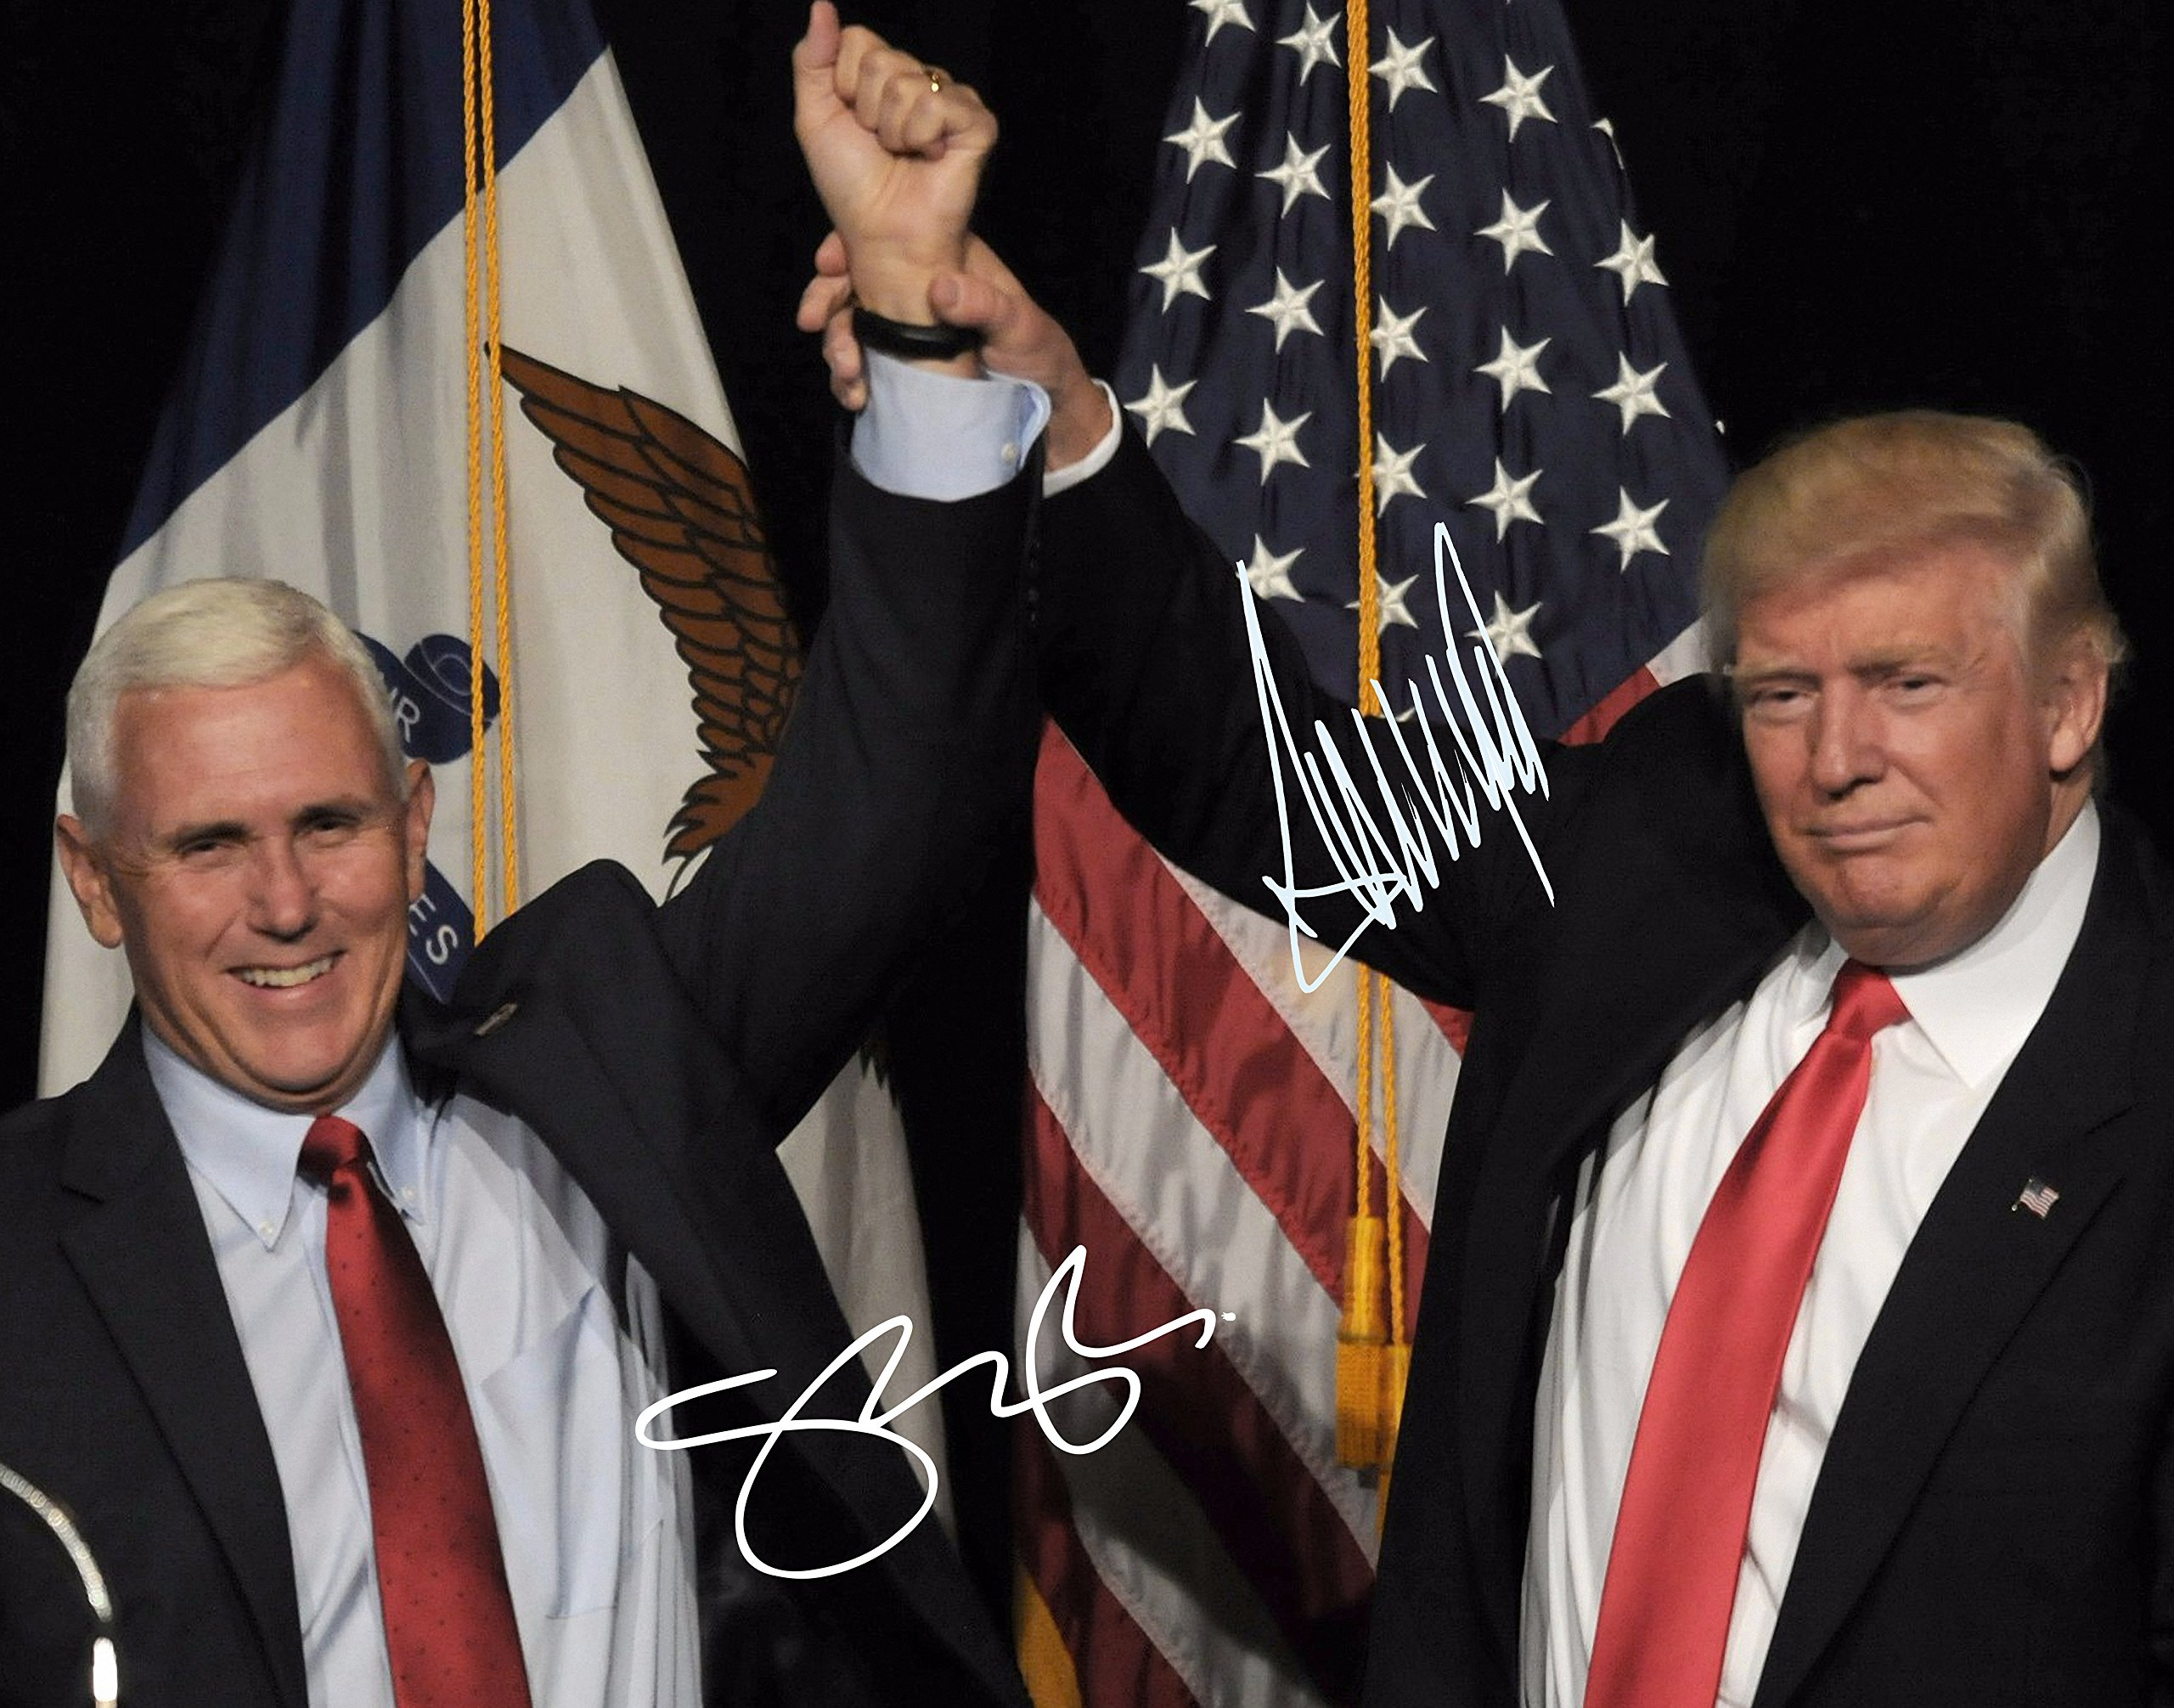 Donald Trump and Mike Pence Autographed Preprint #4